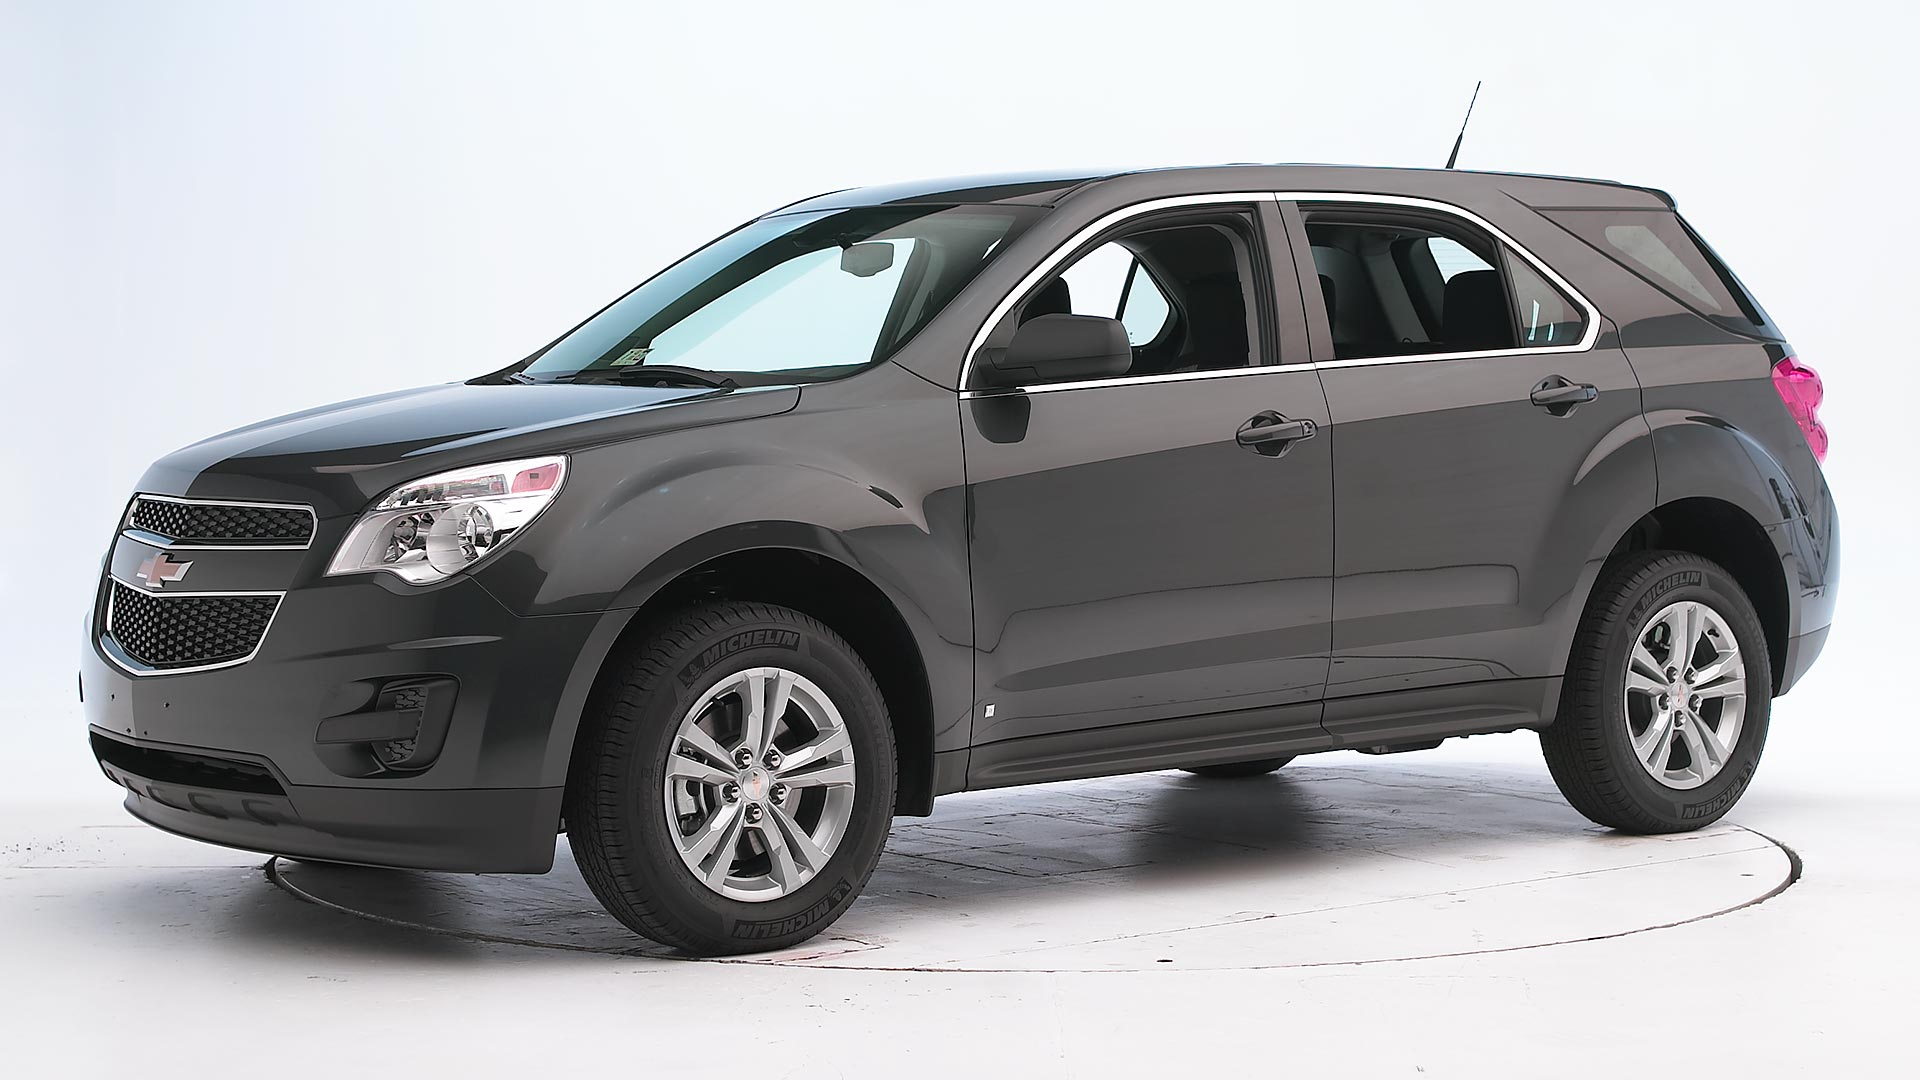 2010 Chevrolet Equinox 4-door SUV